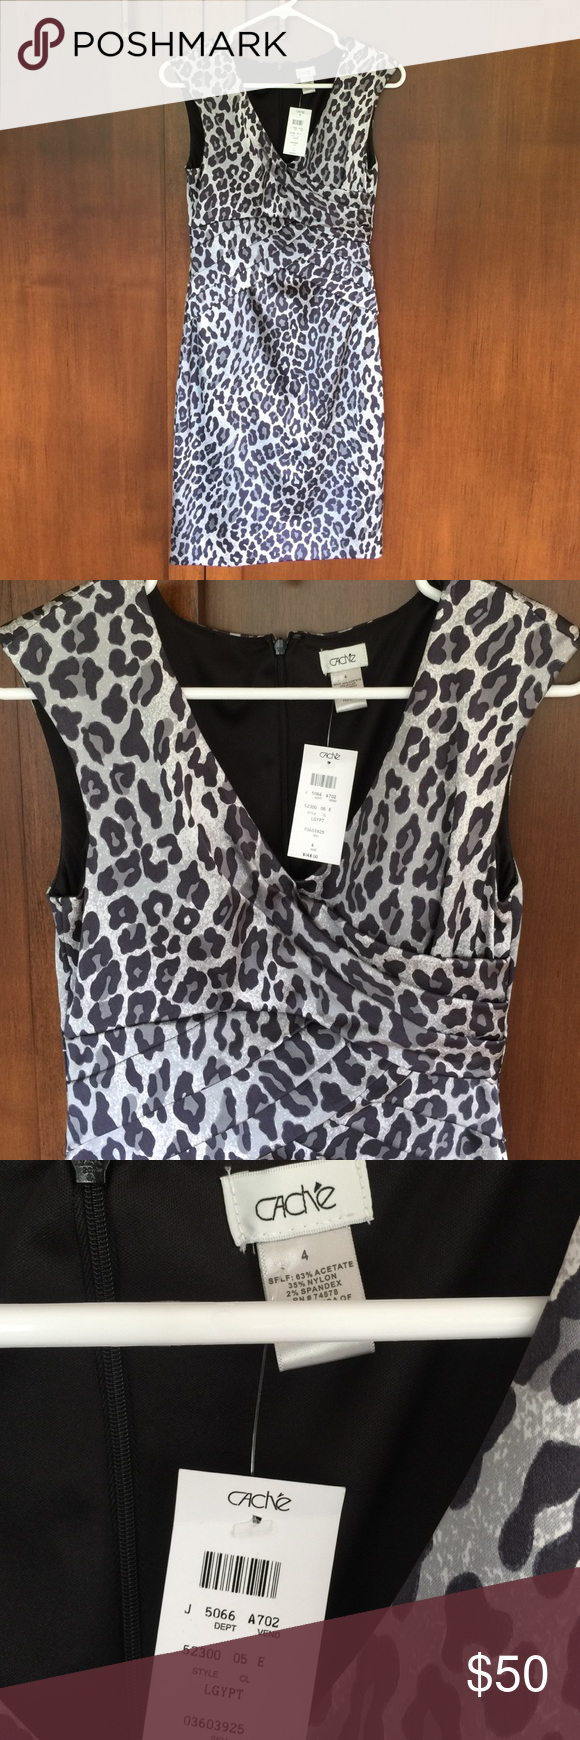 NWT-Cache dress Sexy leopard print dress. Gathered cross cross detail at bust , fully lined. Cache Dresses Midi